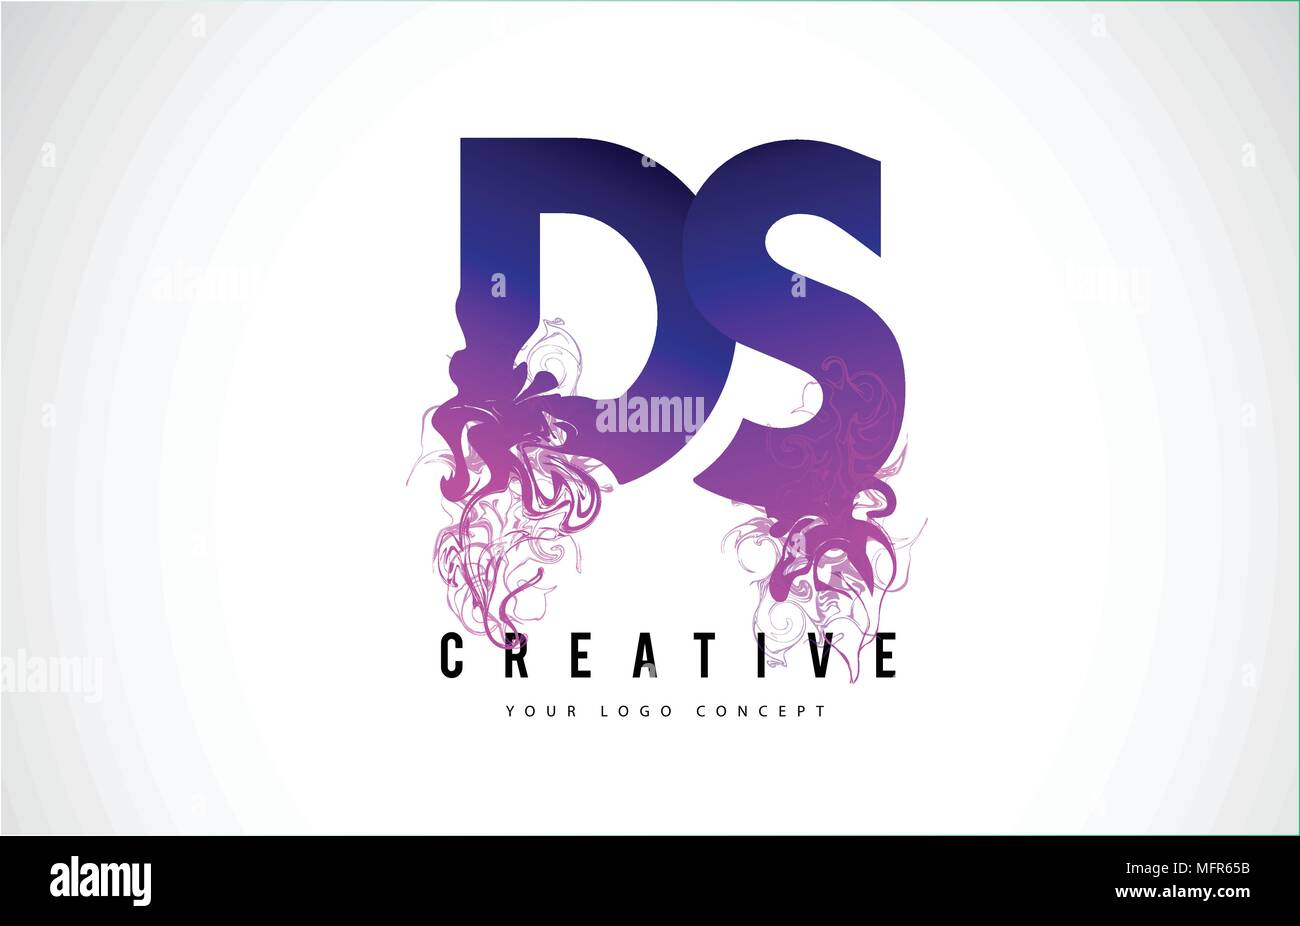 ds d s purple letter logo design with creative liquid effect flowing vector illustration